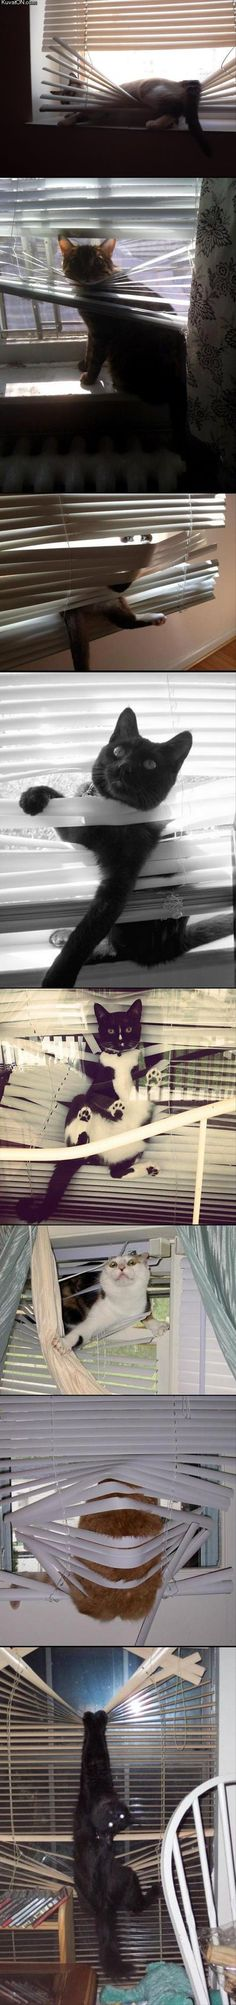 Cats & blinds don't mix